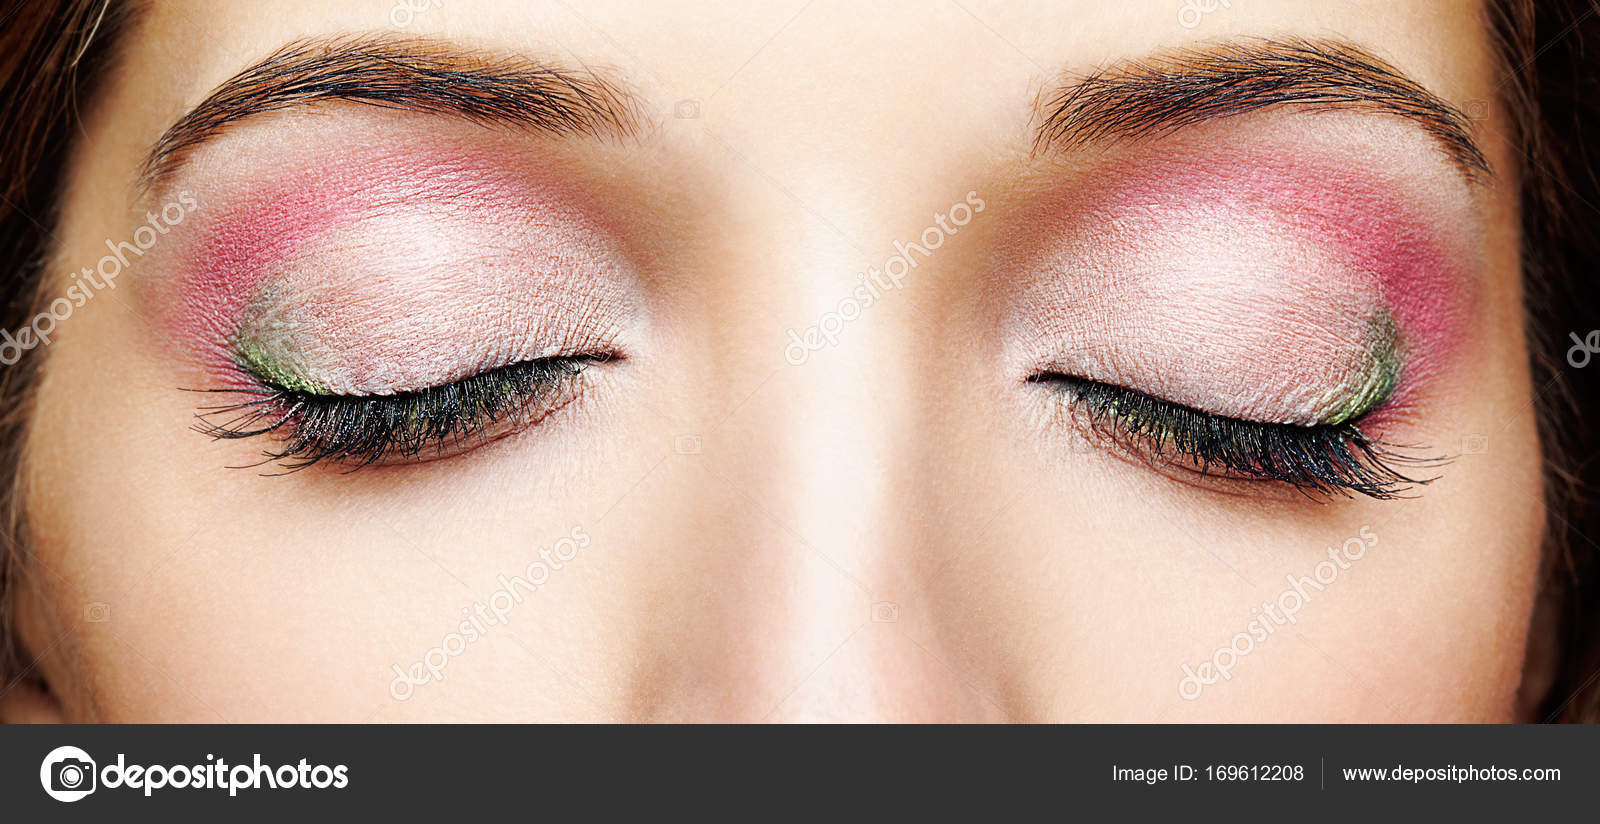 Closeup Shot Of Woman Face With Closed Eyes And Pink Green Mak